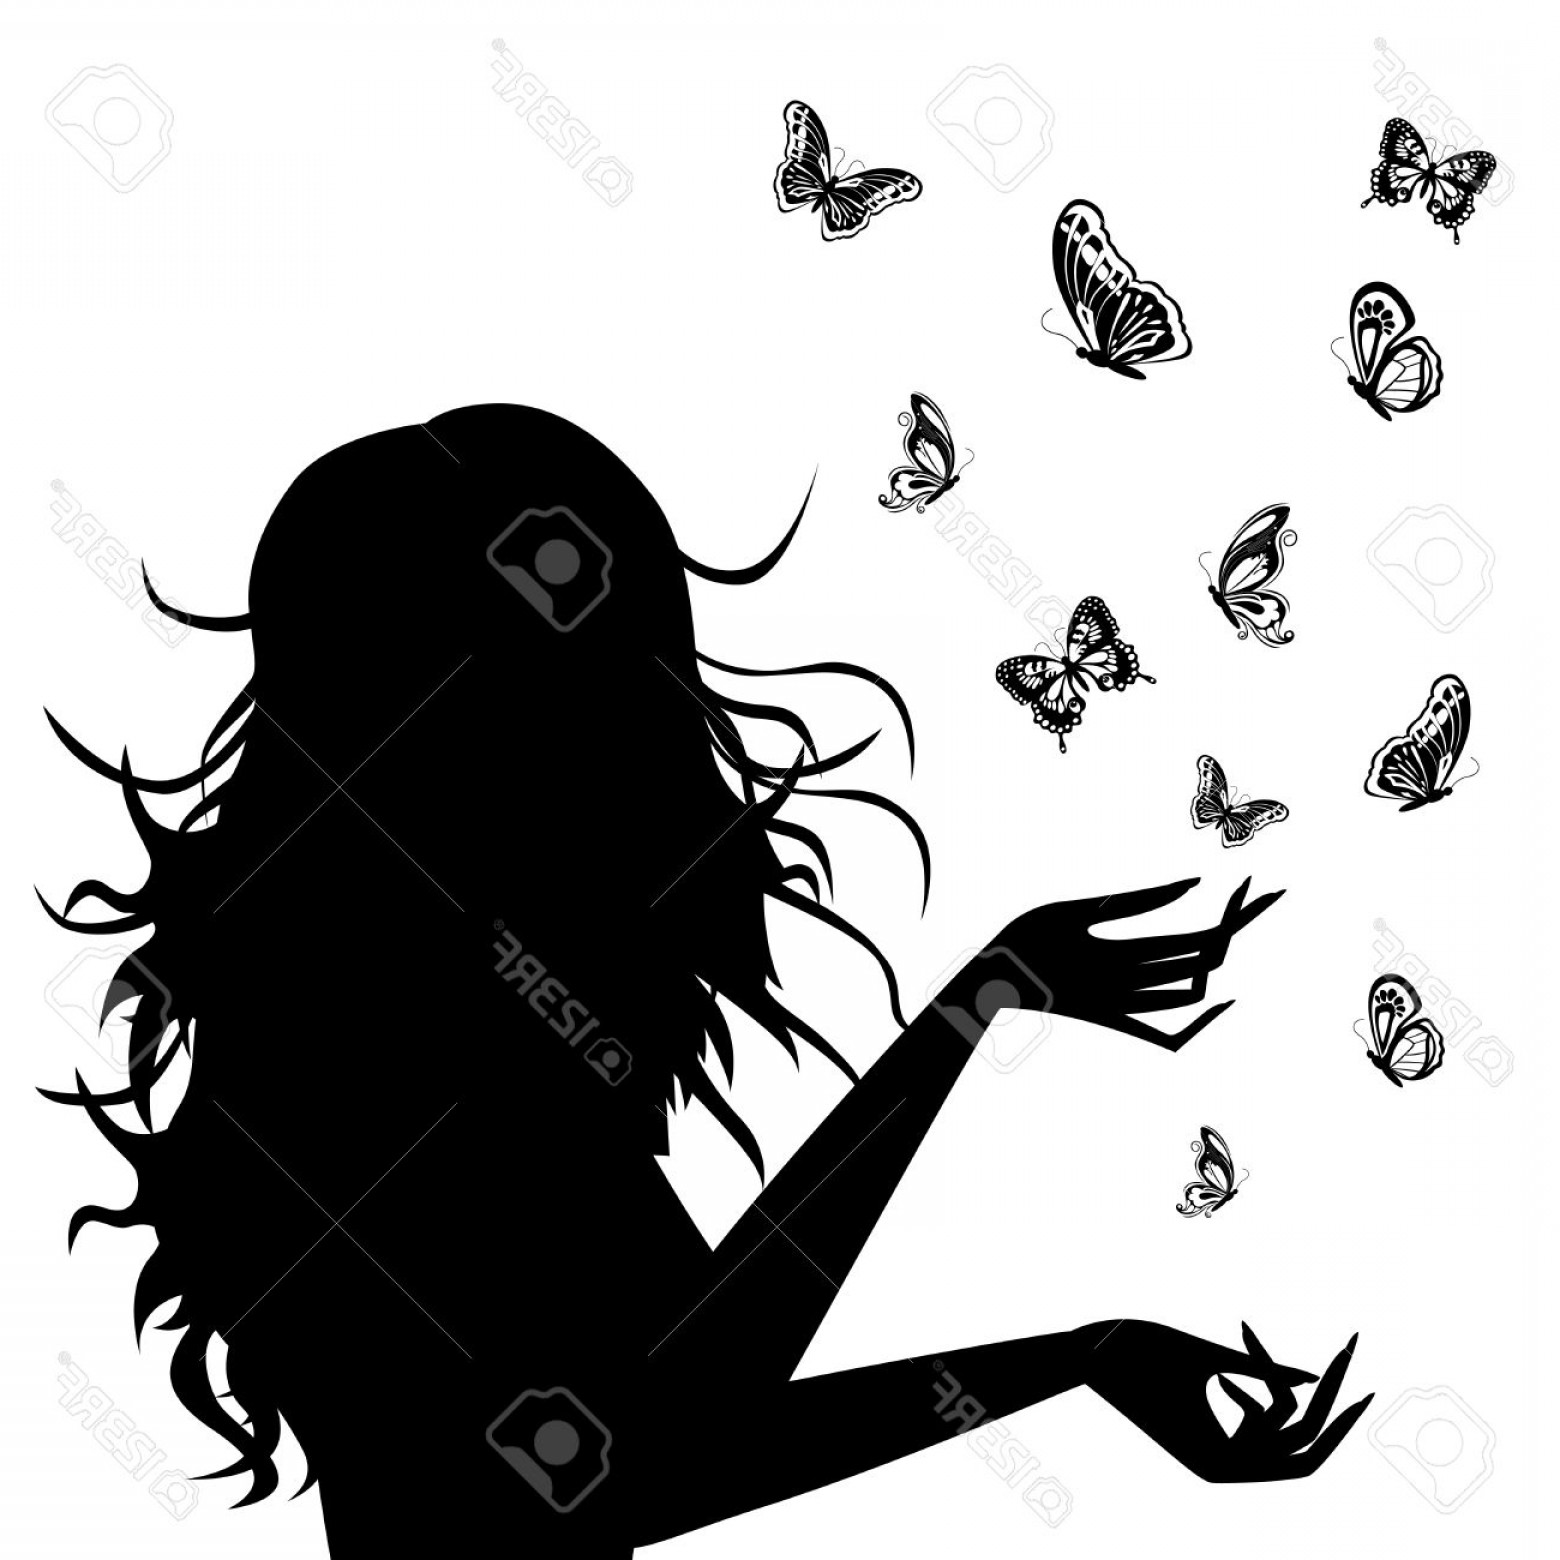 Young Woman Silhouette Vector: Photobeautiful Young Woman Silhouette With Butterflies Around Her Hand Drawing Black And White Vector Ill